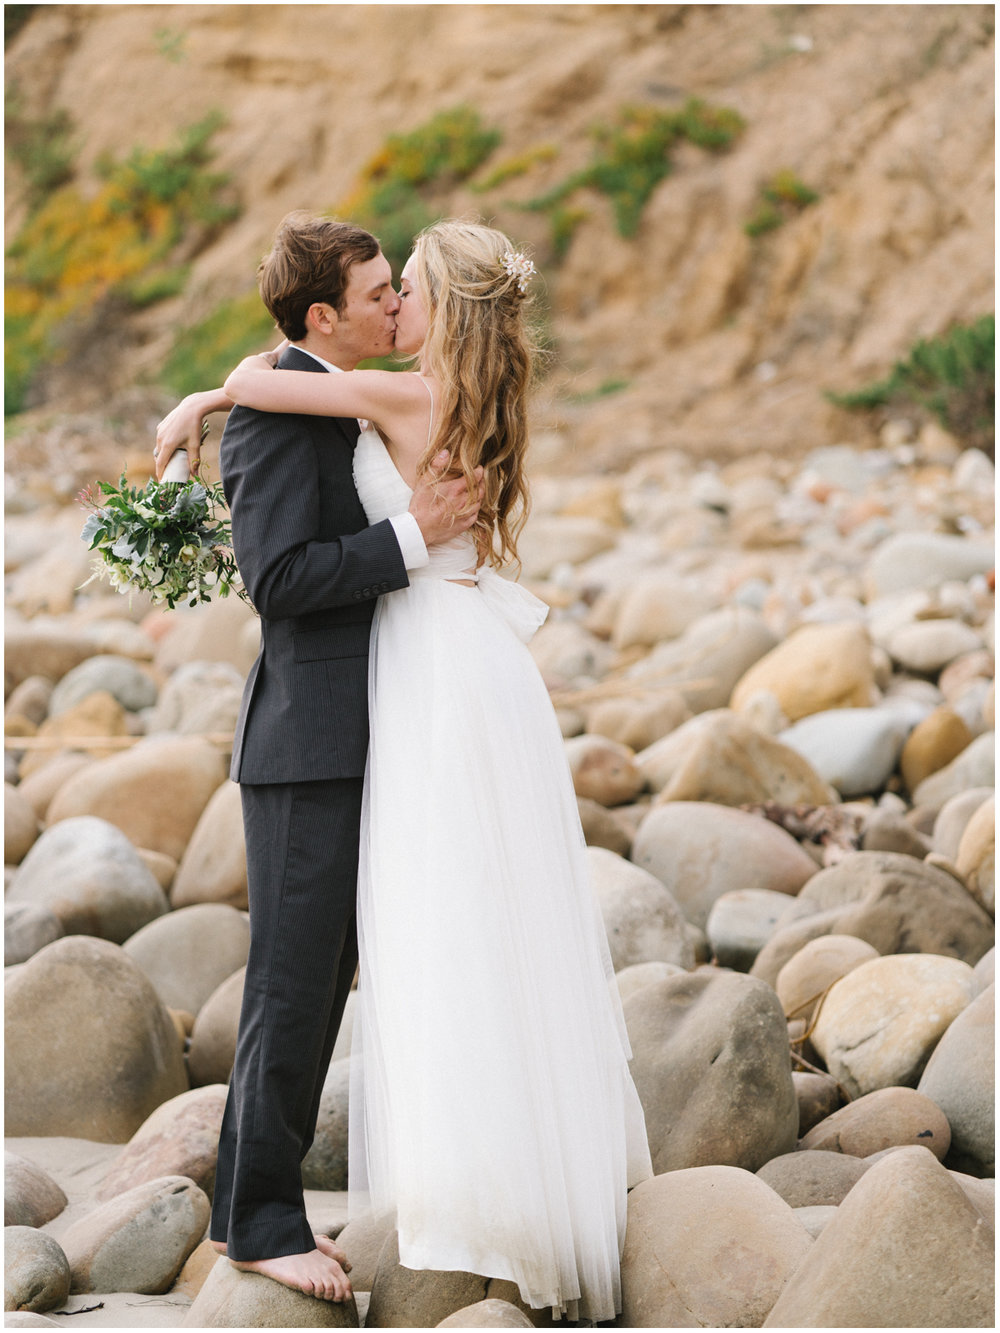 Santa Barbara Elopement Wedding Photographer - Pinnel Photography-23.jpg